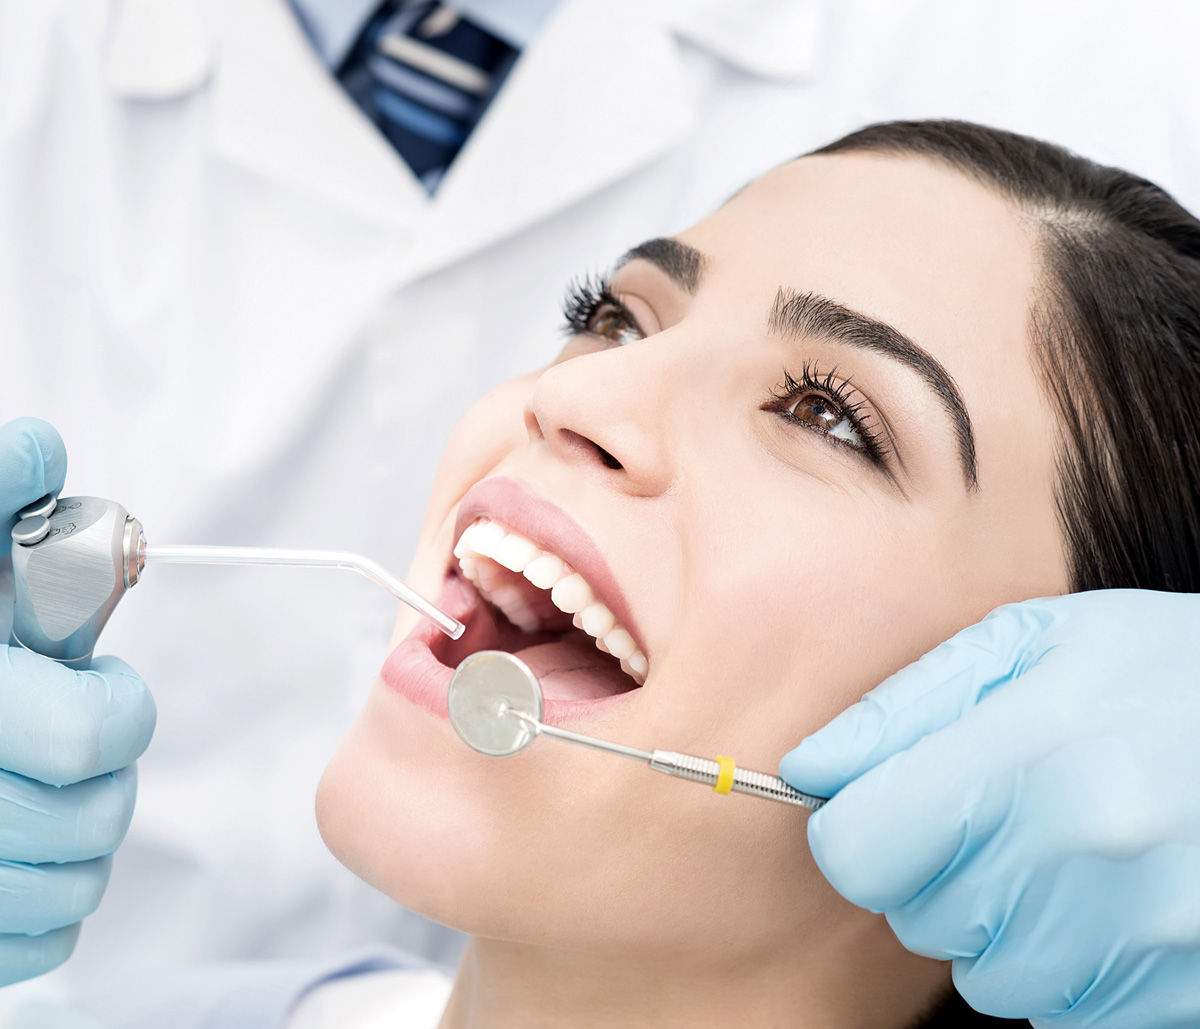 What Are the Benefits of Dentures for Missing Teeth?